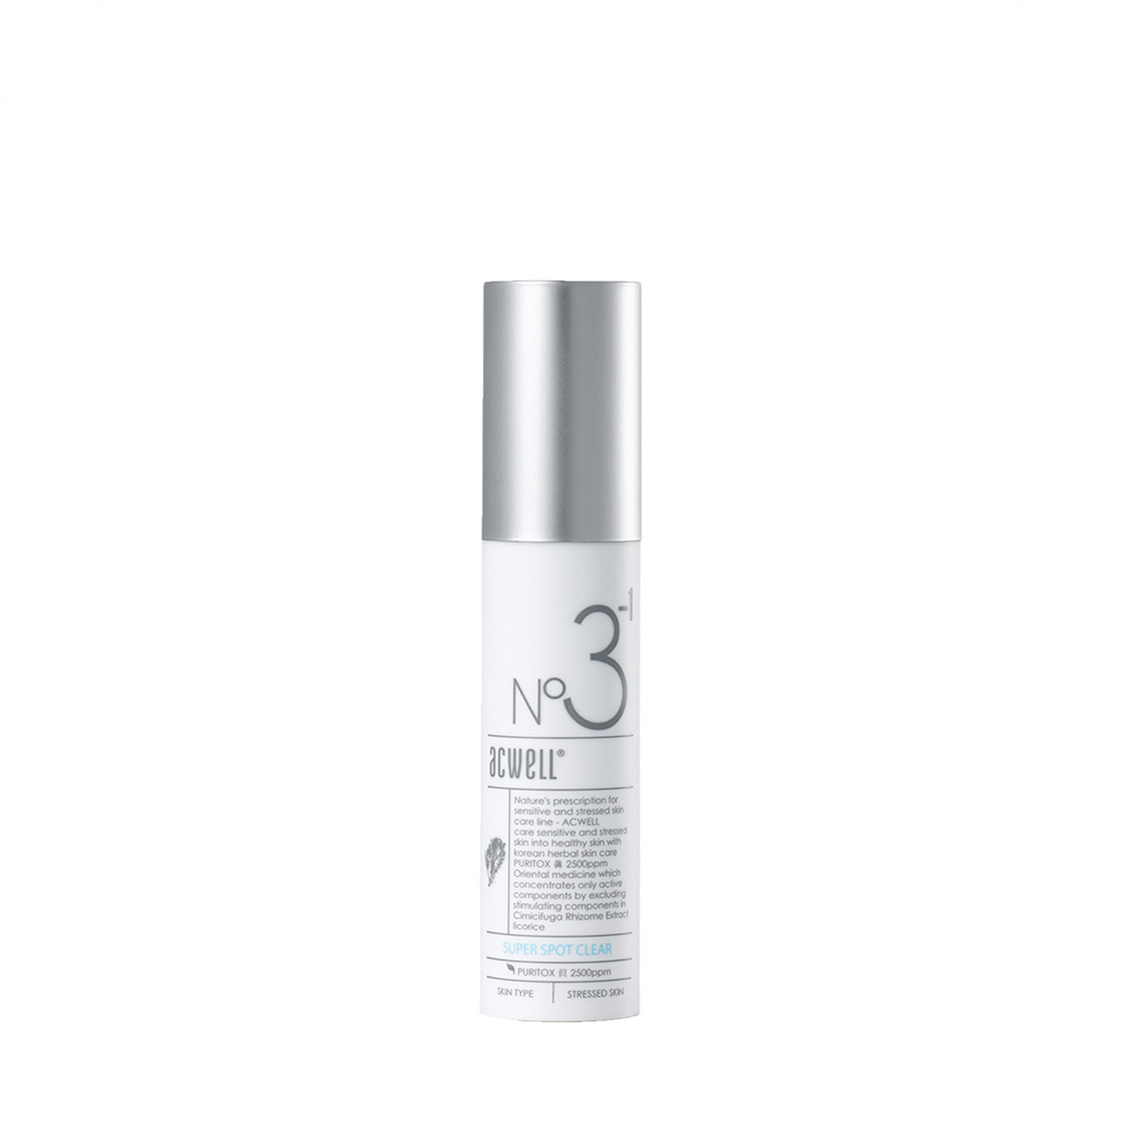 03 Super Spot Clear Gel 20ml